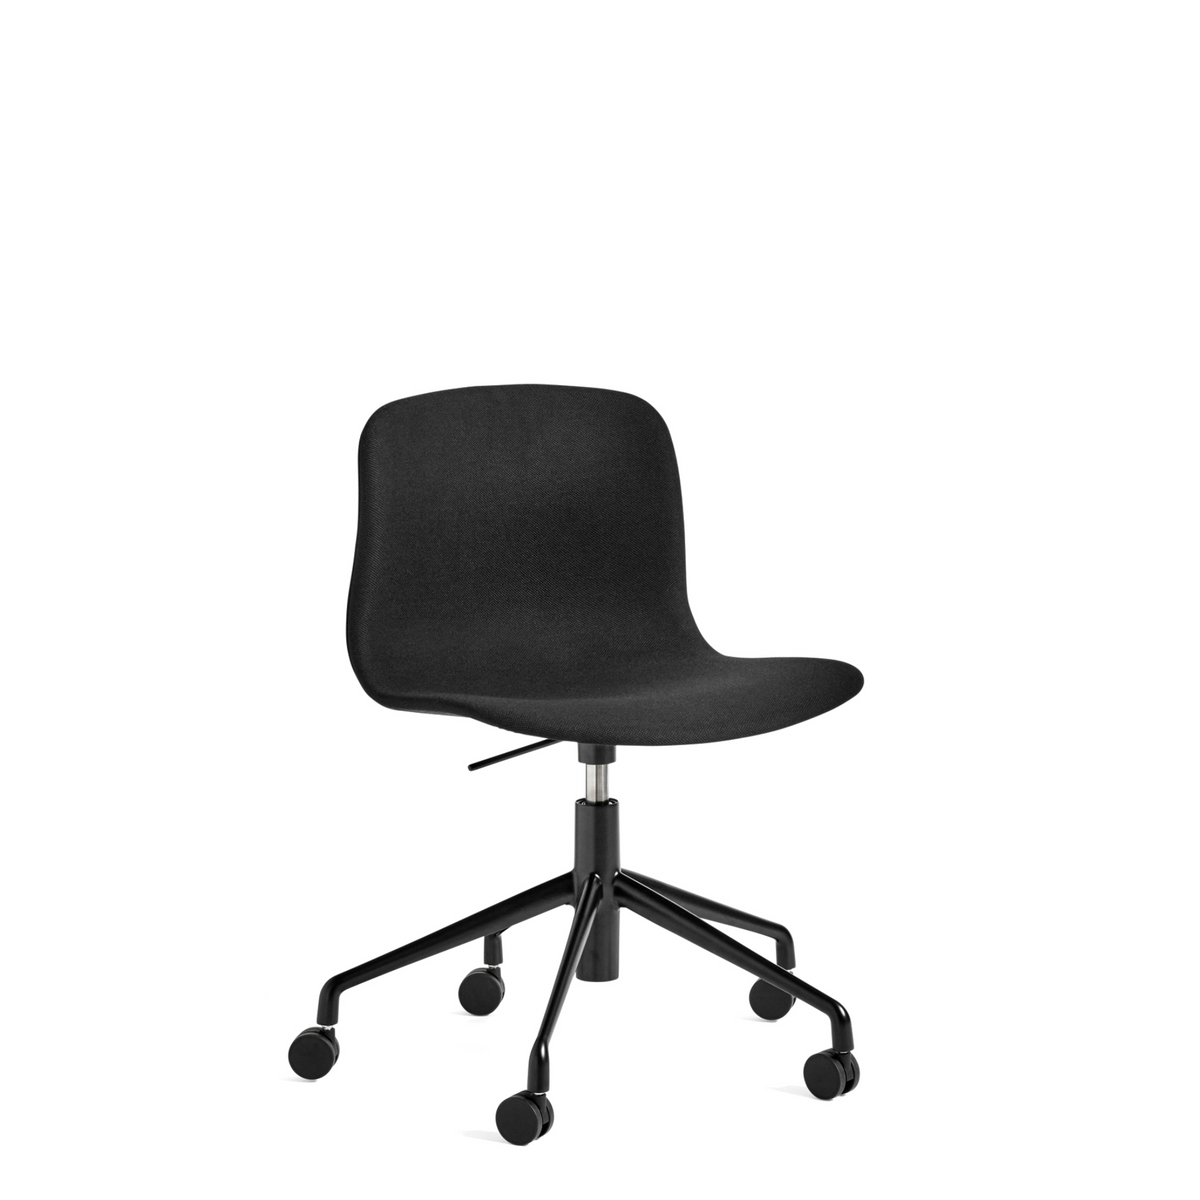 HAY AAC 51 Office Task Chair Upholstered